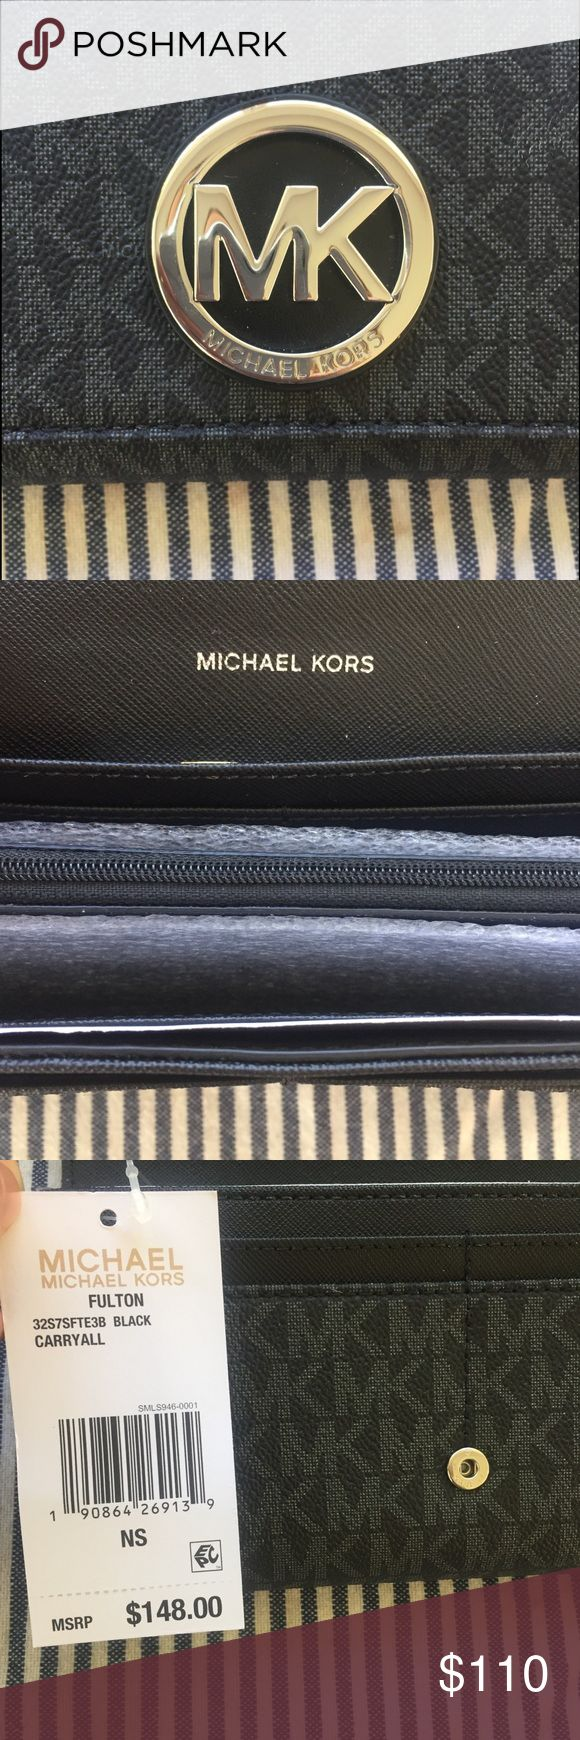 Michael Kors Fulton Wallet Brand new with tags, current season Fulton wallet. Always open to offers! Can be dressed up or down, features a coin purse, 14 card slots, numerous slots for bills... Michael Kors Bags Wallets